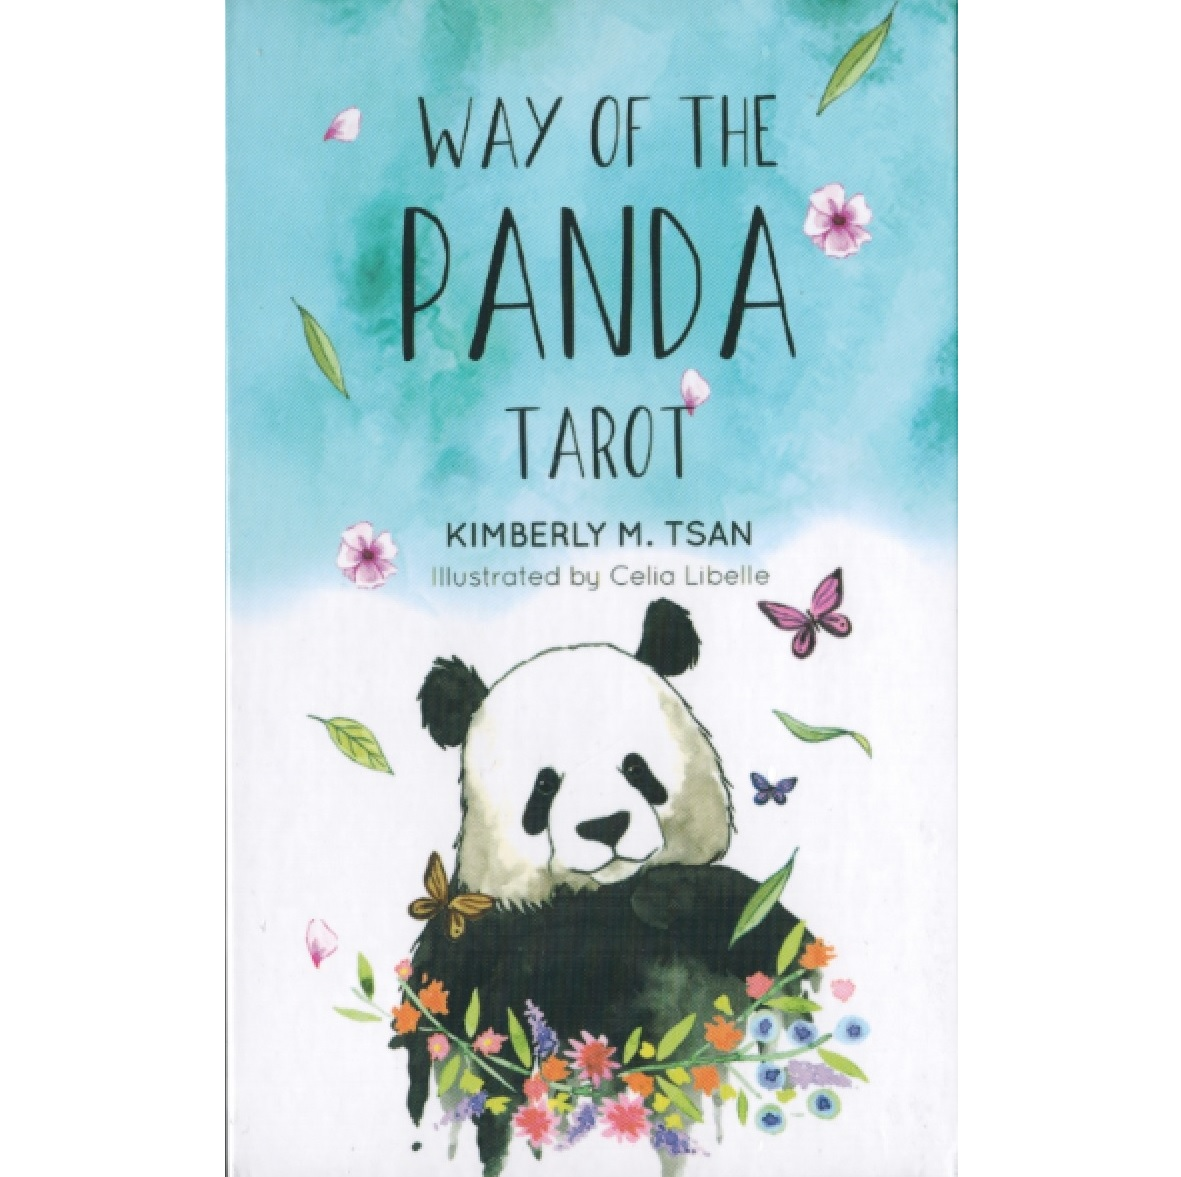 Way of the Panda Tarot 21